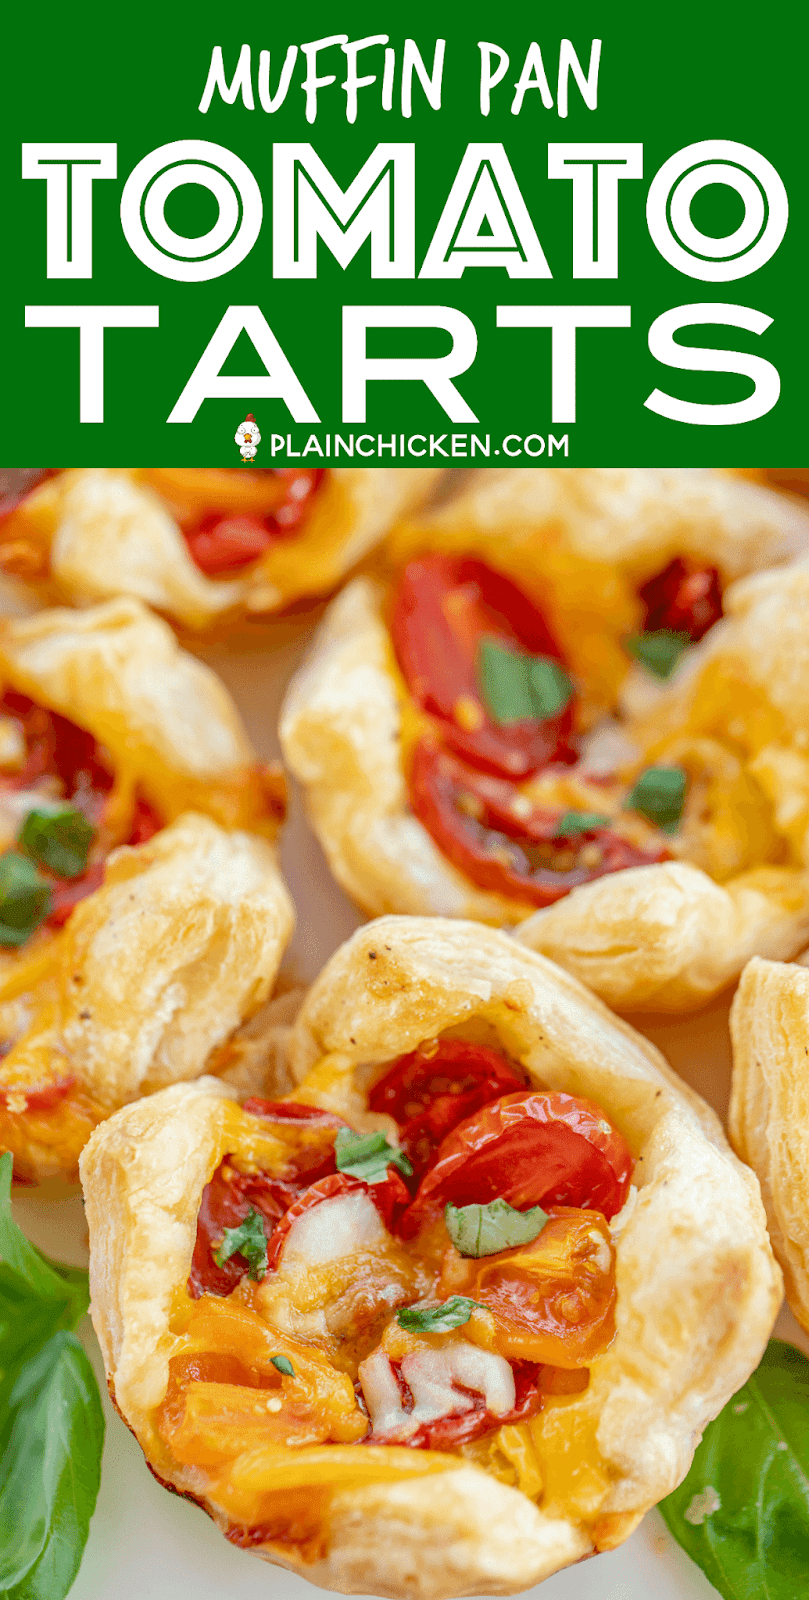 Muffin Pan Tomato Tarts - quick and delicious side dish or appetizer. Multi-colored cherry tomatoes make for a beautiful presentation. Puff pasty, mayonnaise, salt, pepper, cherry tomatoes, cheddar cheese, mozzarella cheese, basil. Can make ahead and refrigerate until ready to bake. Great for dinner parties! #tomatoes #appetizer #sidedish #tomato #basil